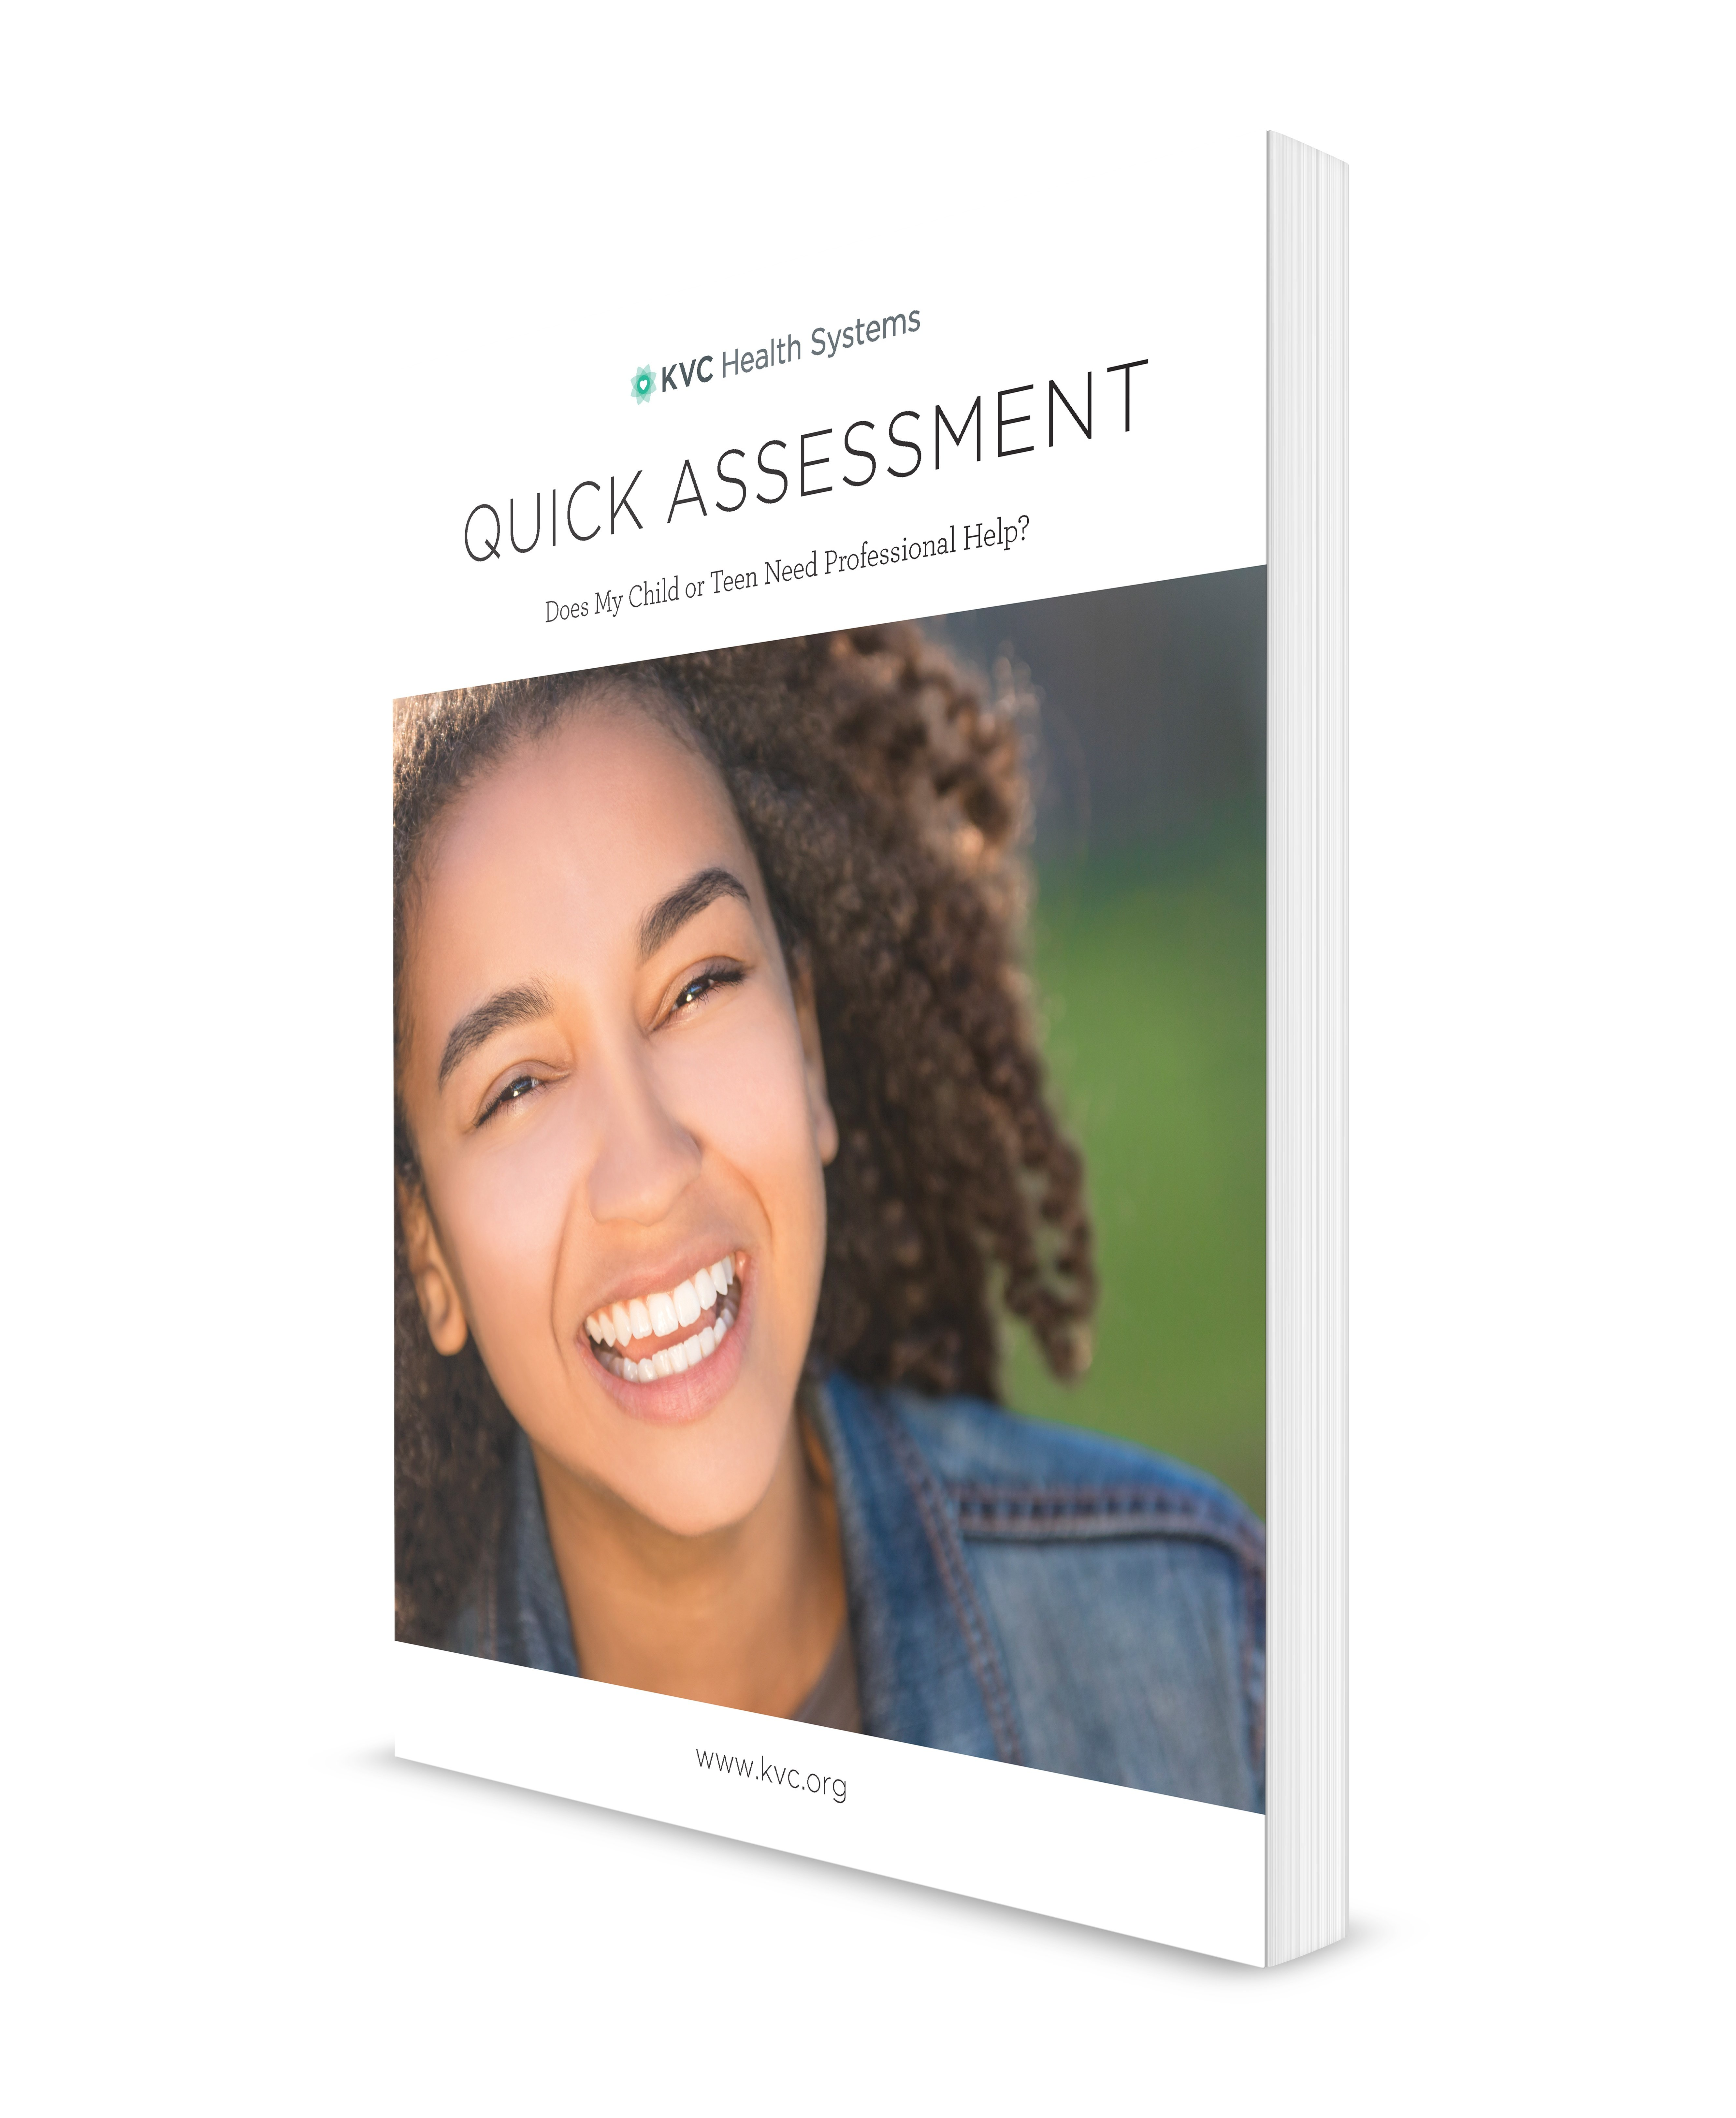 Quick Assessment Does My Child or Teen Need Professional Help